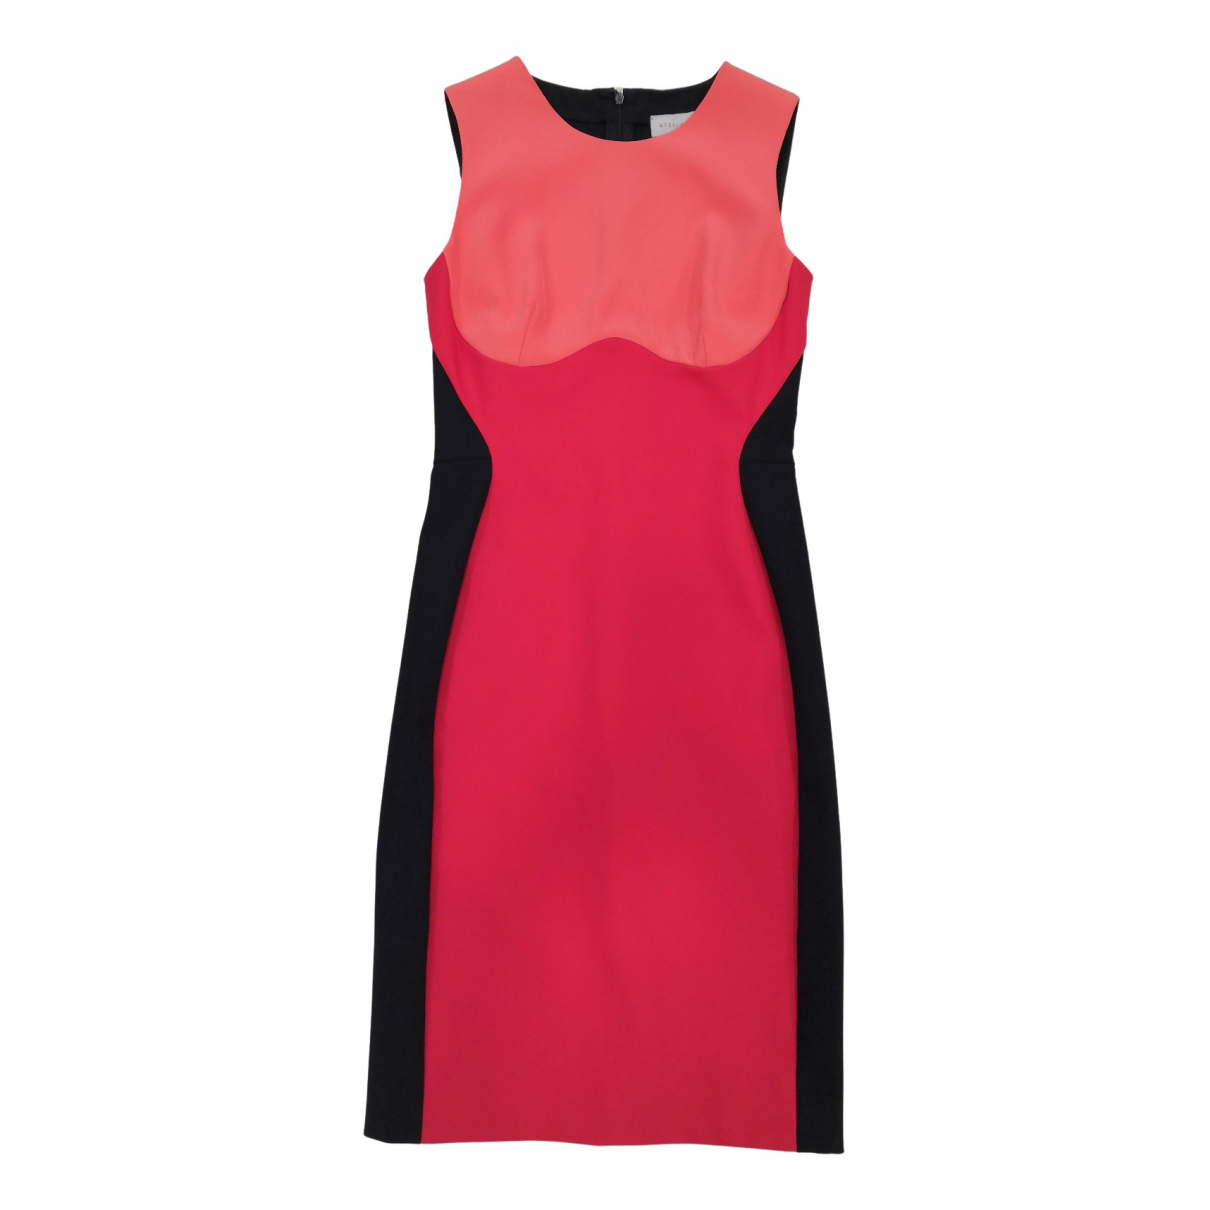 Stella Mccartney N Pink Cotton - elasthane dress for Women 40 IT